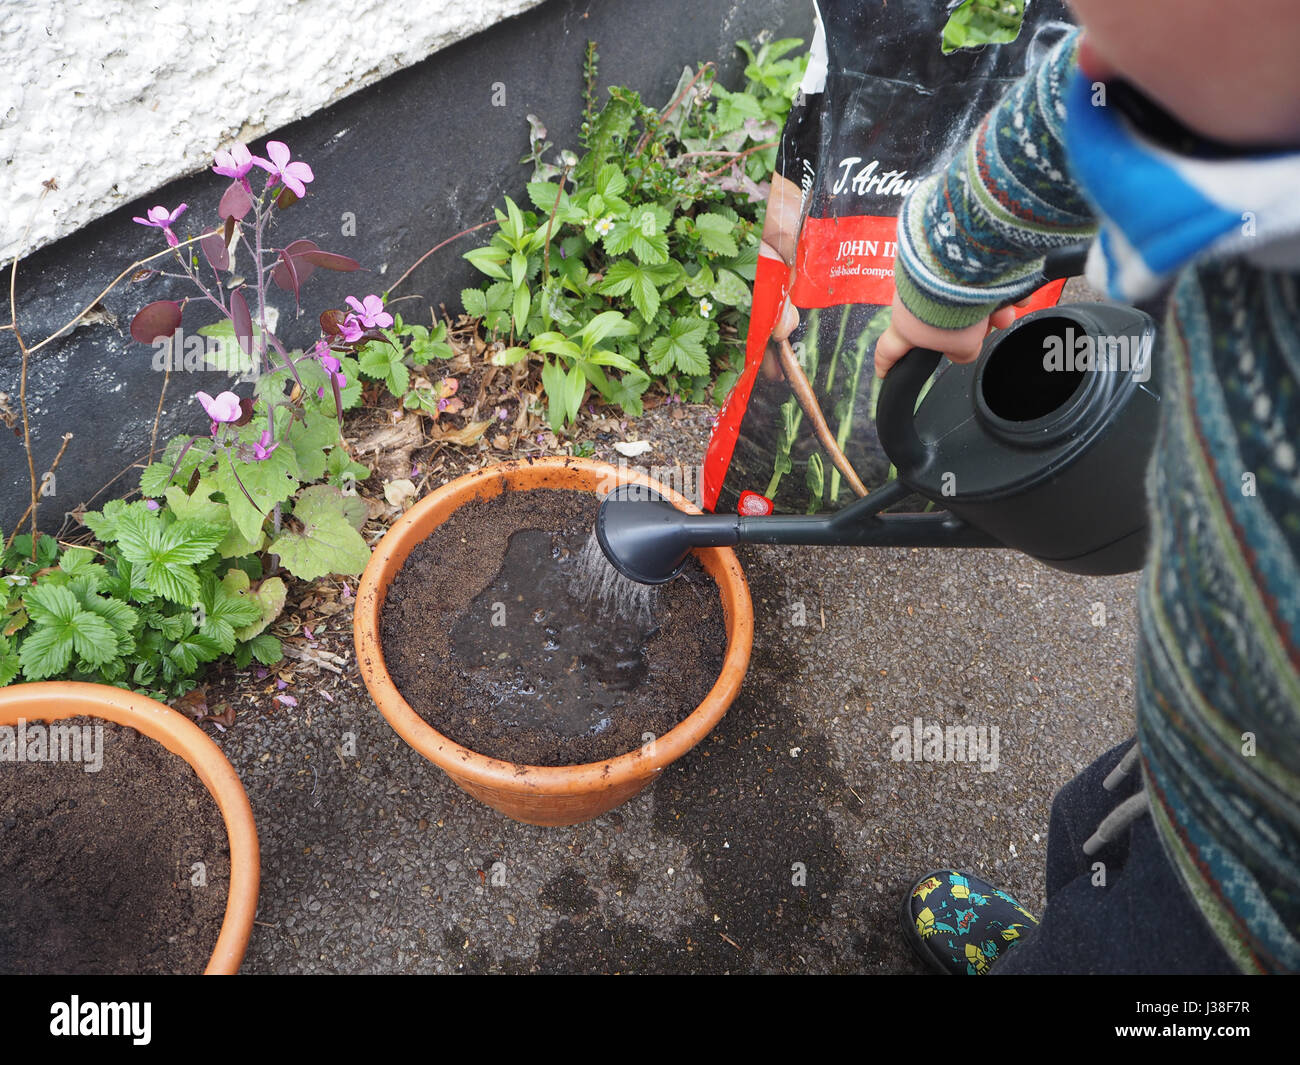 Two year old helps with planting seeds. One of a series of toddler in garden. Watering a plant pot with small watering can. Stock Photo